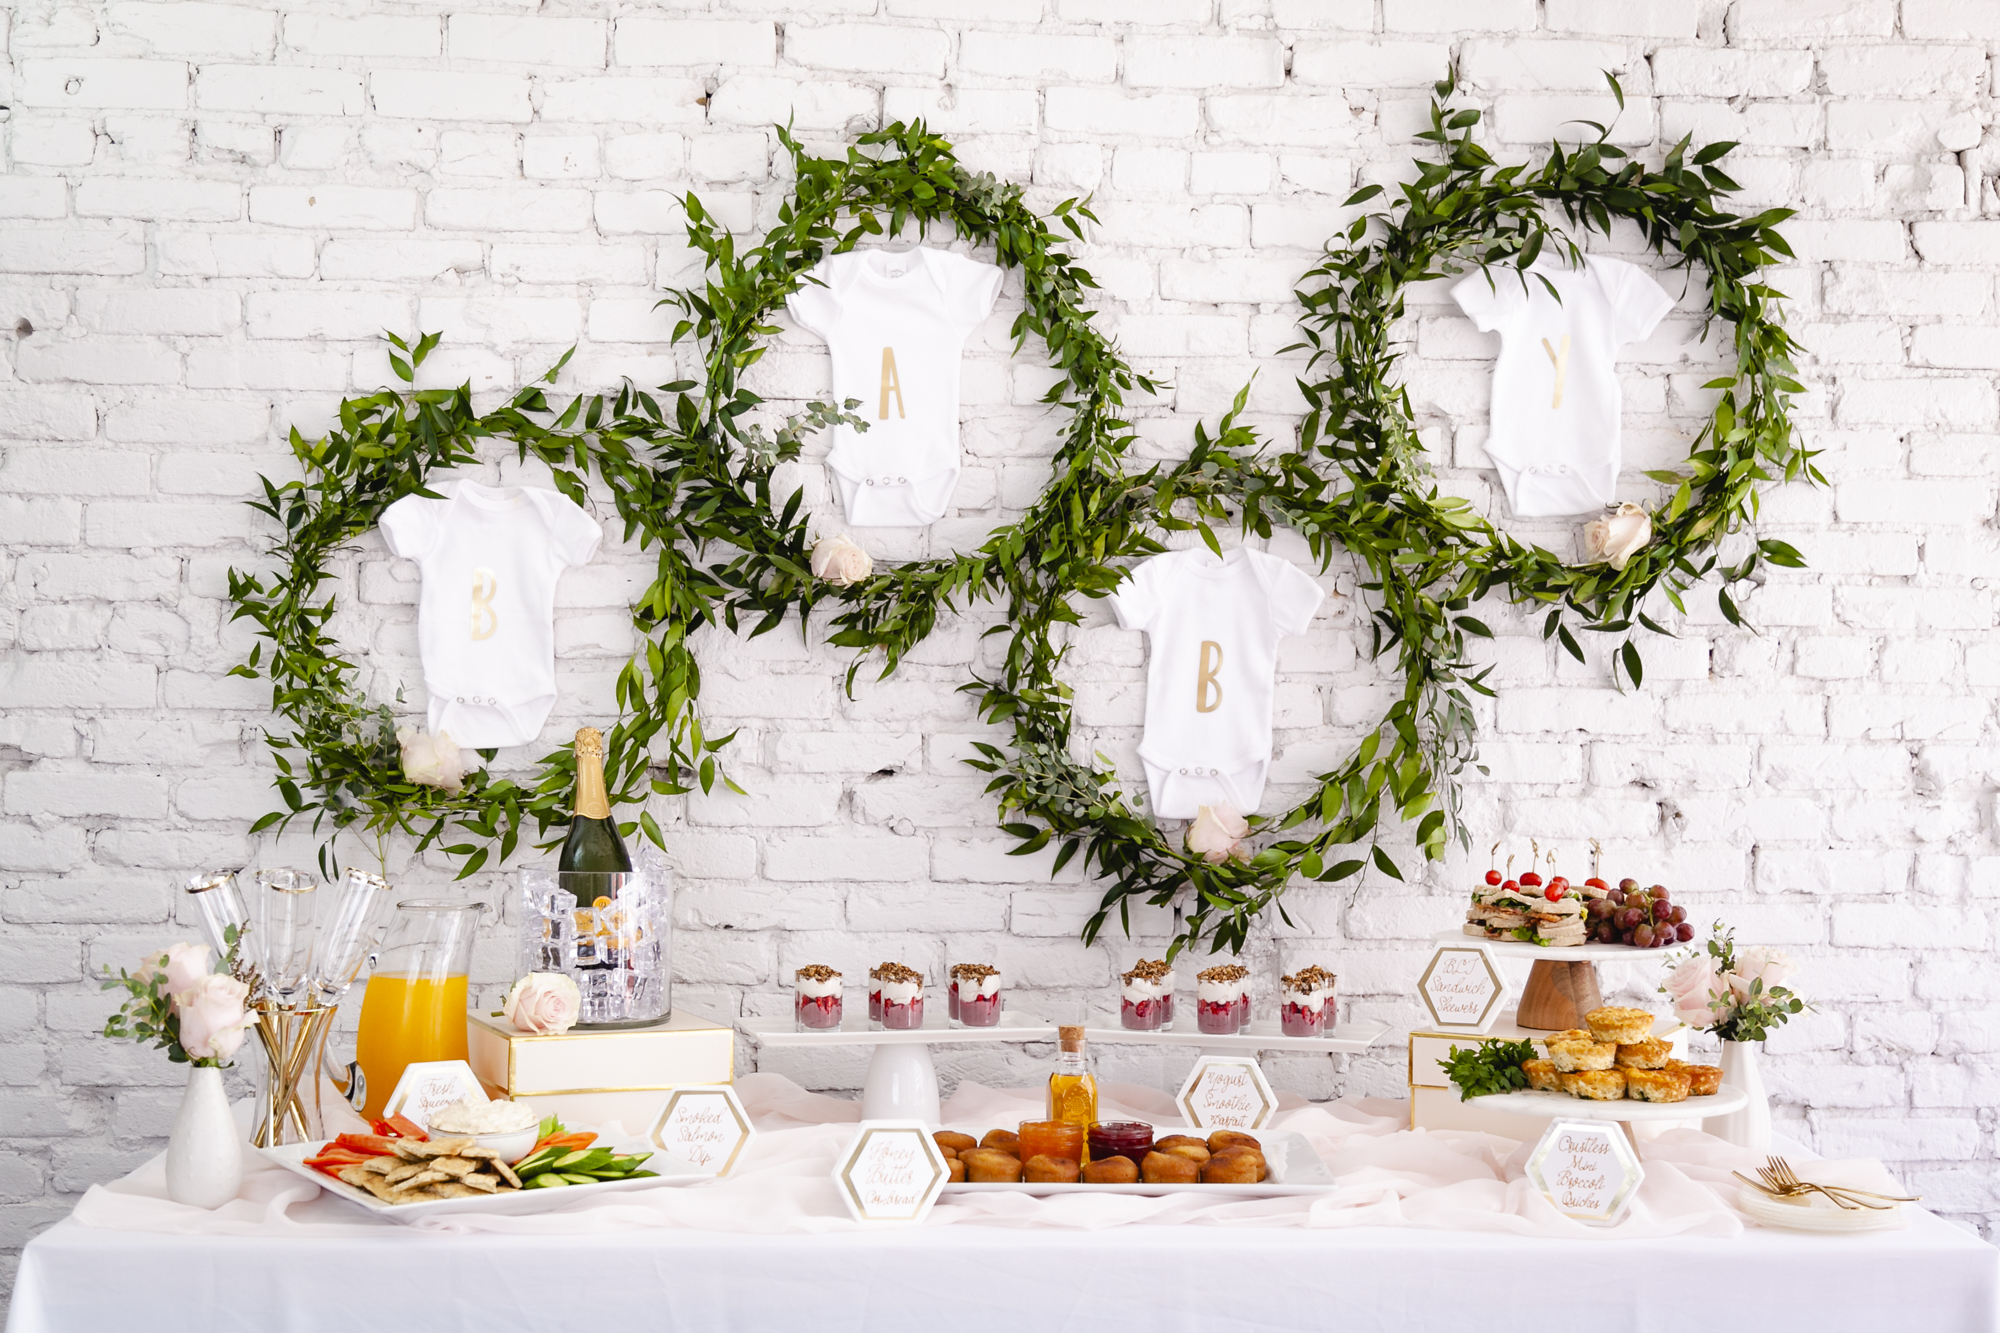 baby shower food ideas from Mint Event Design